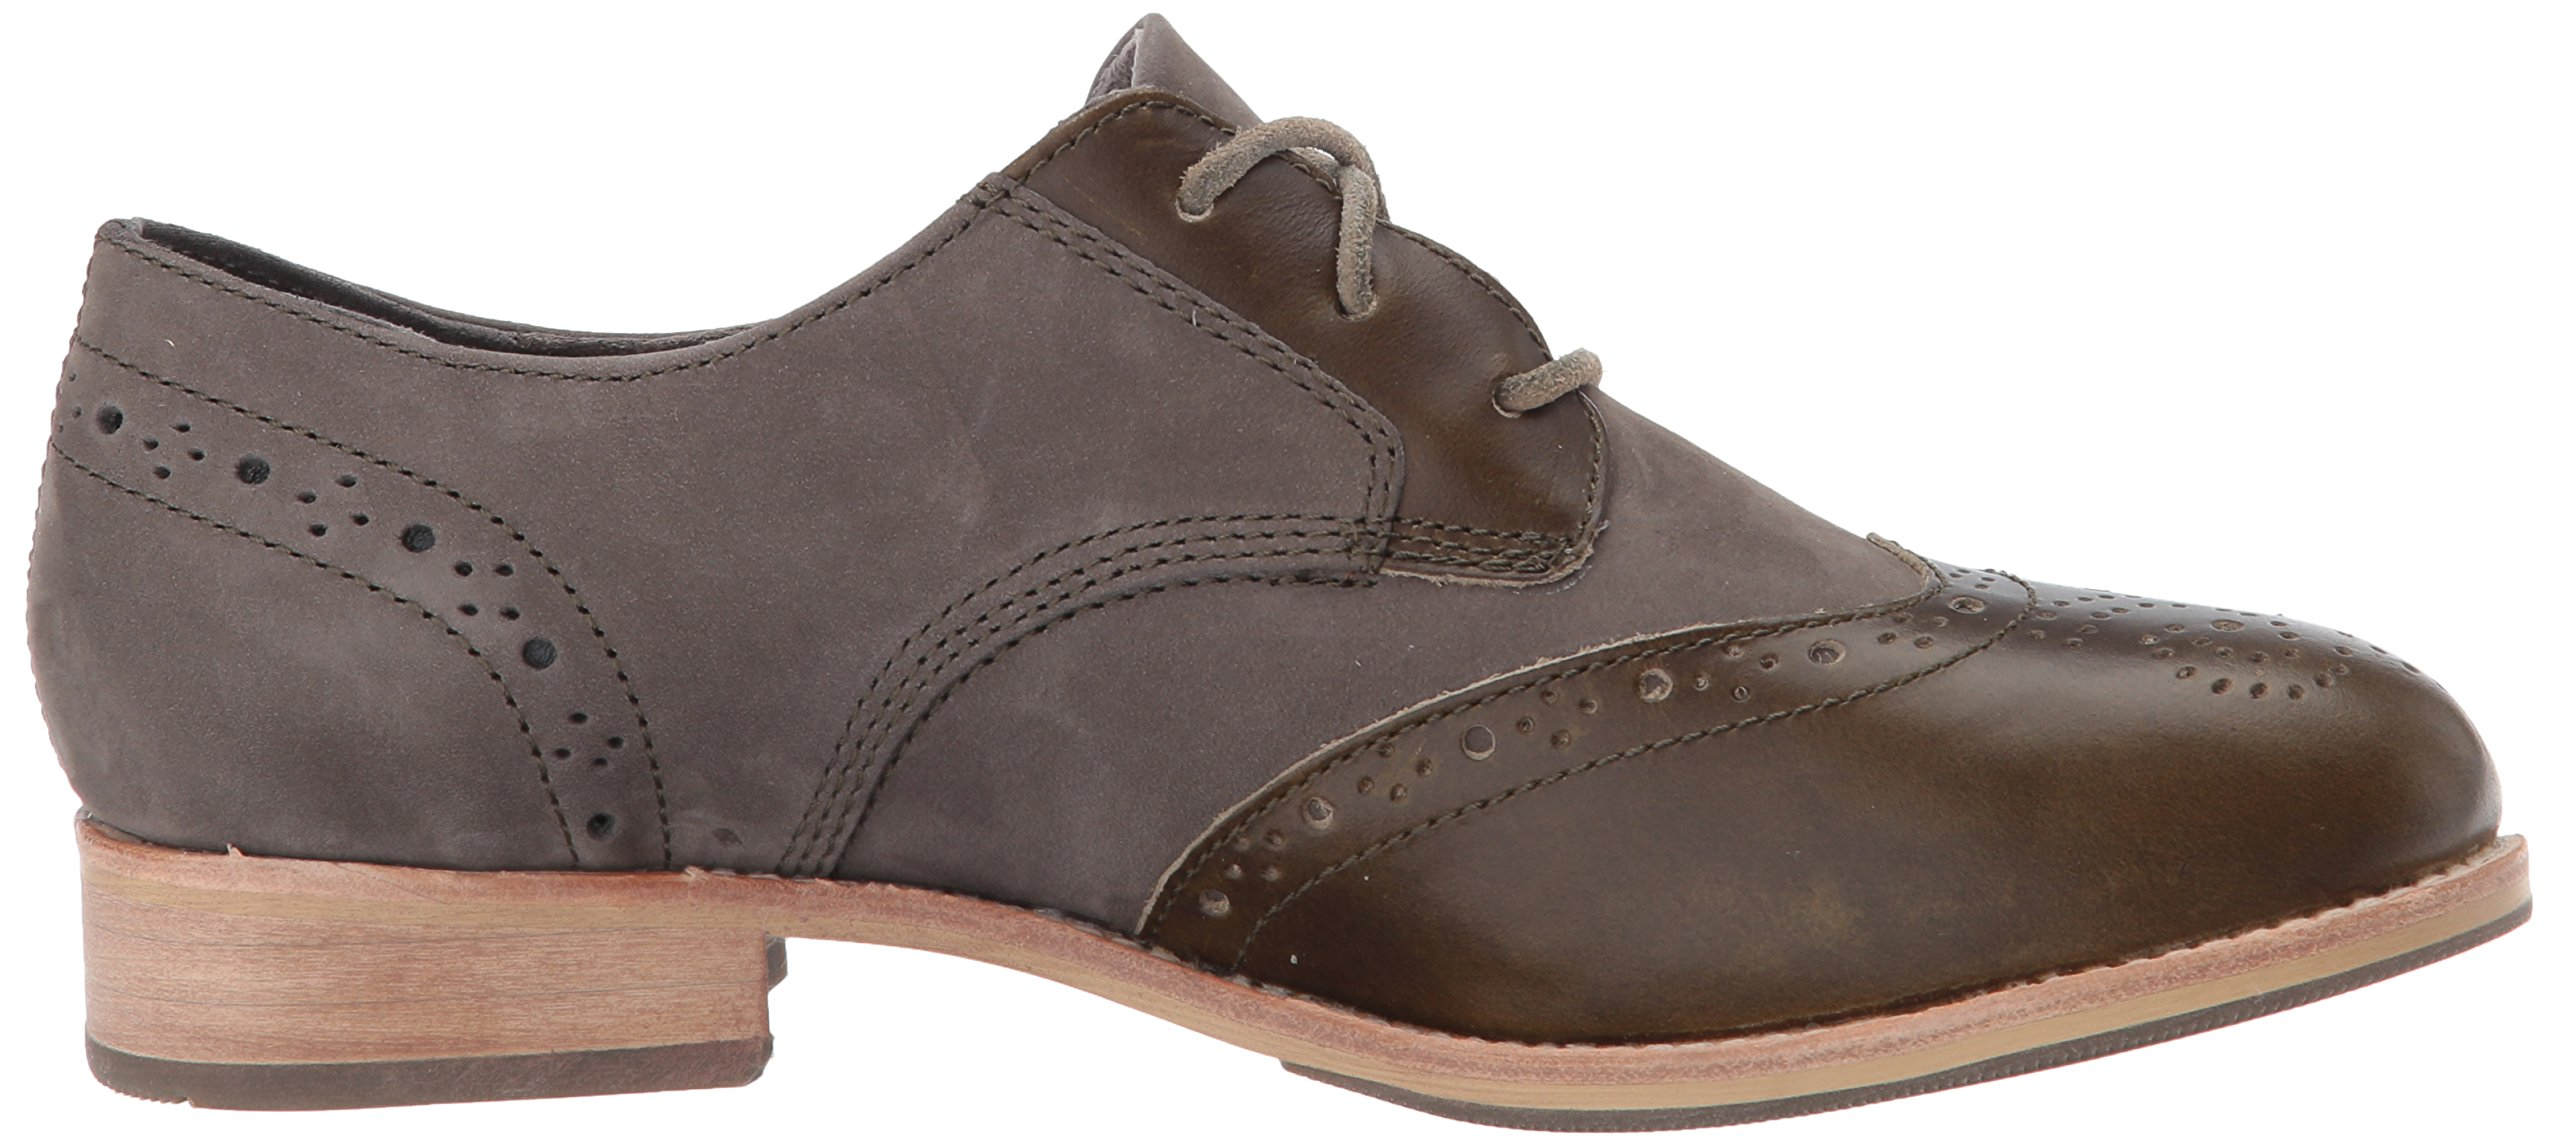 Caterpillar Women's Reegan II Lace up Leather Oxford, Olive, 5.5 Medium US by Caterpillar (Image #7)